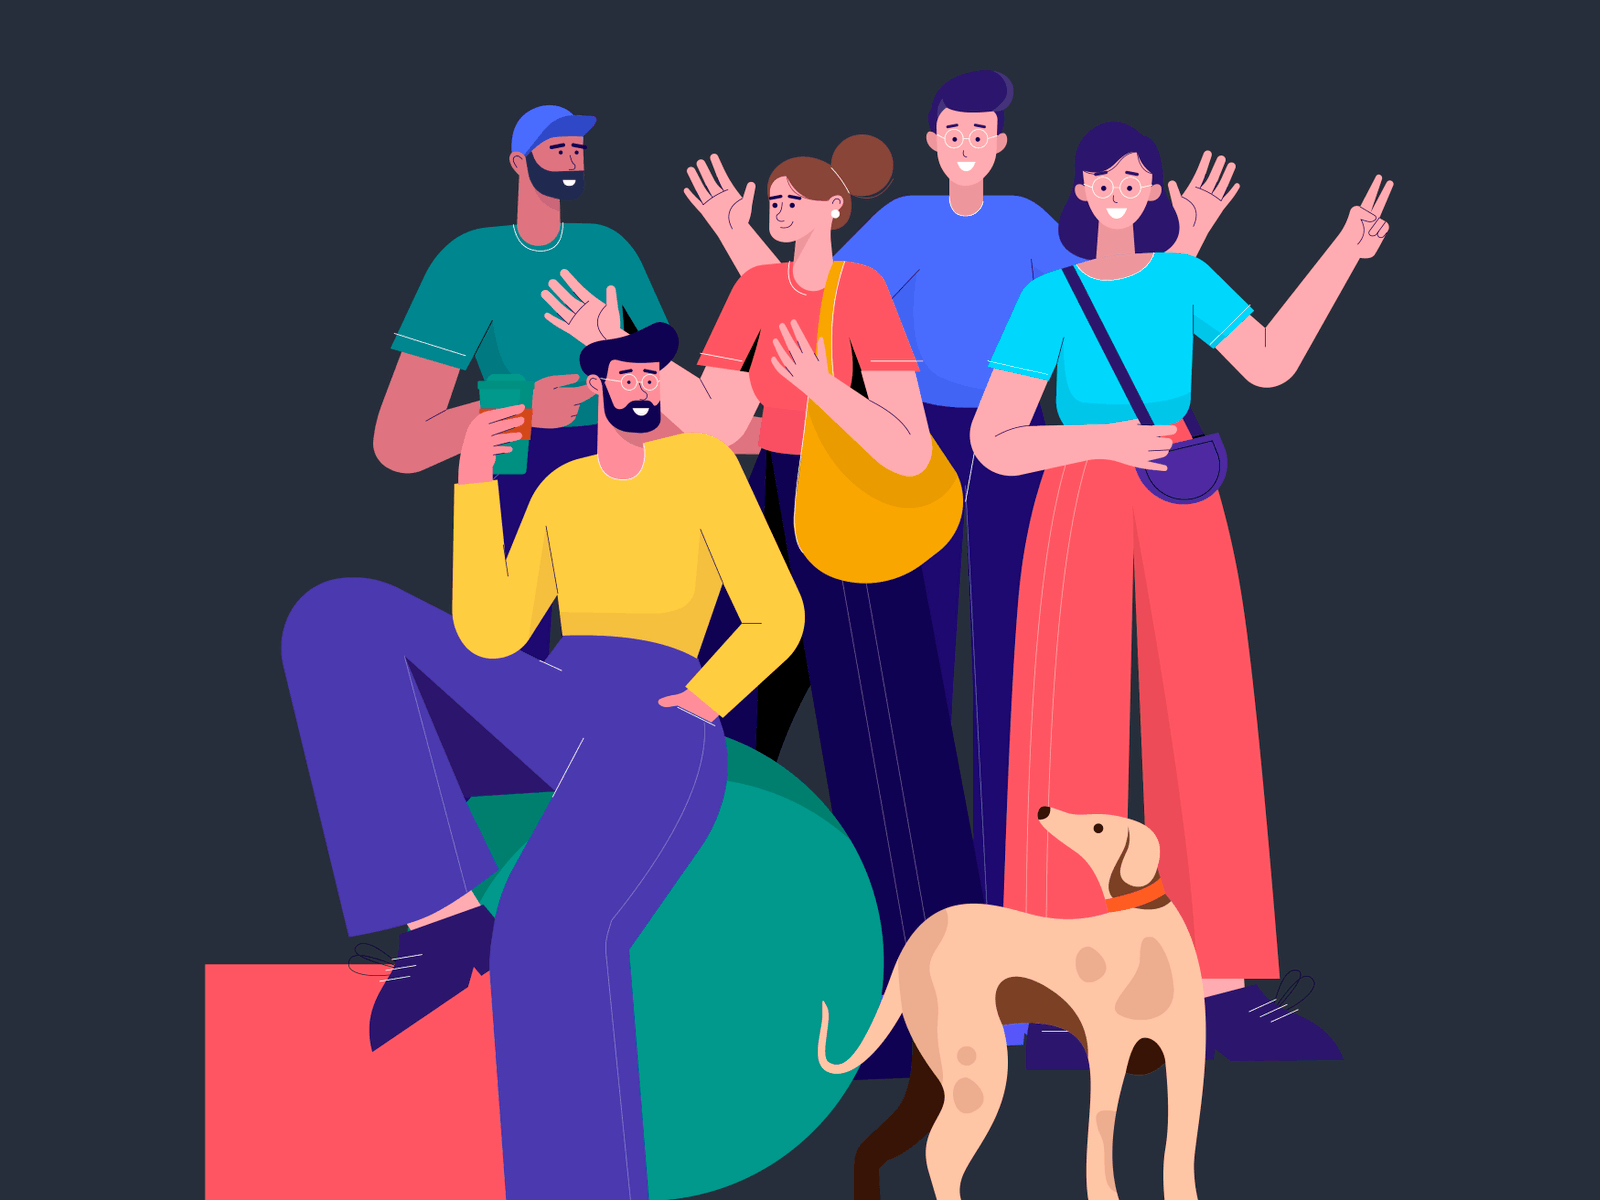 Lifestyle Free Illustrations - 12 colorful vector illustrations about lifestyle. Saving you time as a designer and money as a startup owner or an entrepreneur.